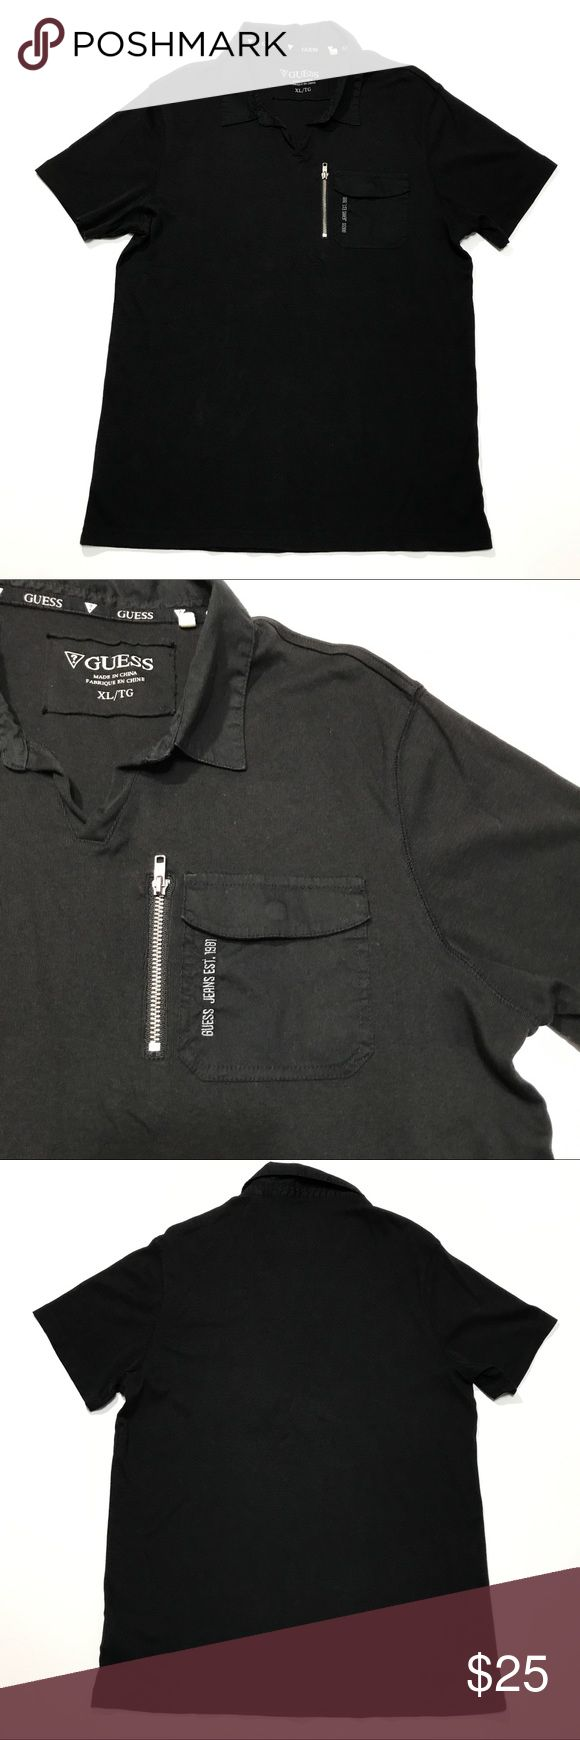 "Guess Black Polo Shirt XL Logo w/ Left Zip Pocket Up for sale is a Guess Men's Black Polo Shirt Sz XL , fits Slim please see measurements for best fit.  Spell out Logo w/ Left Zip Pocket Collared Short Sleeve Very good condition, no flaws or stains.  Armpit to armpit: 21"" Total length: 31"" Guess Shirts Polos"